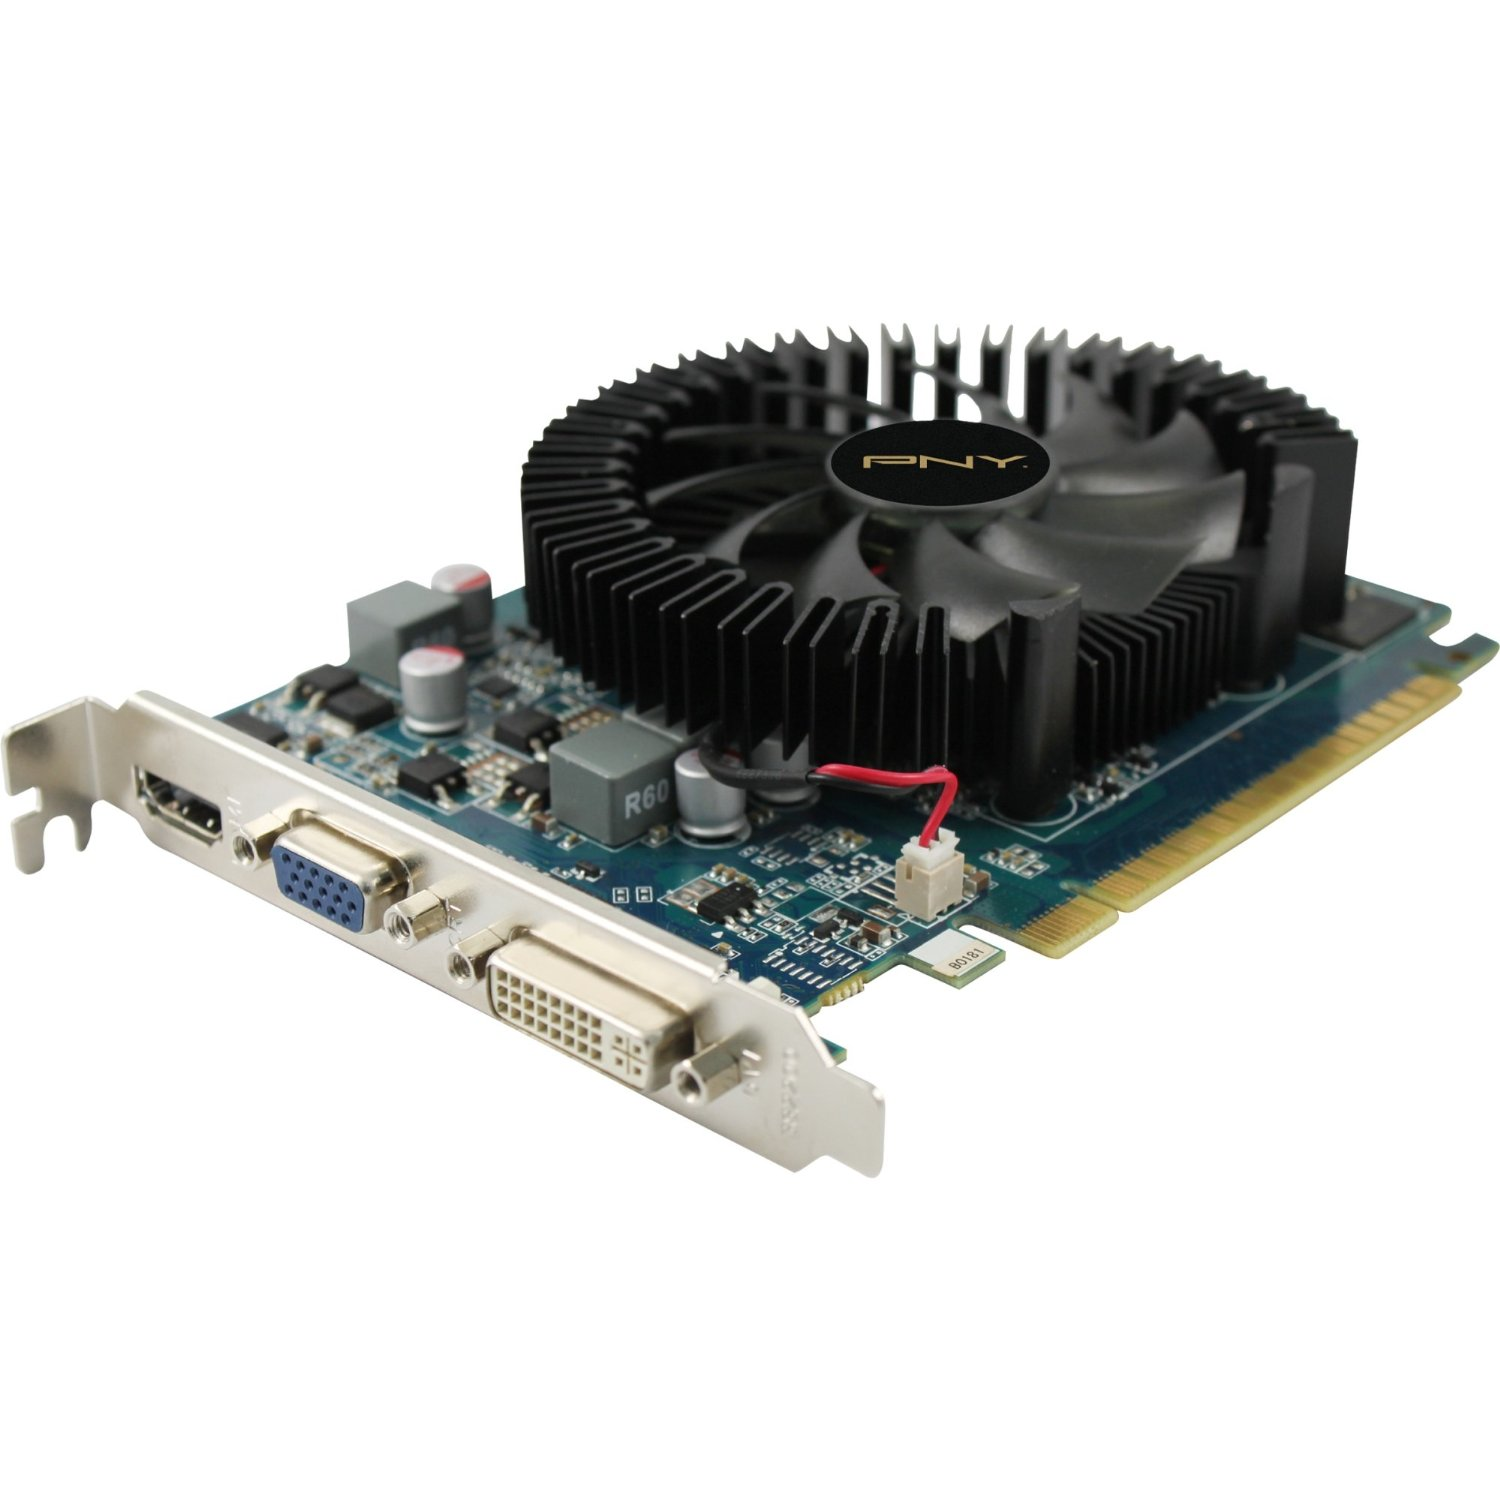 PNY GeForce GT 630 graphics card - GF GT 630 - 2 GB